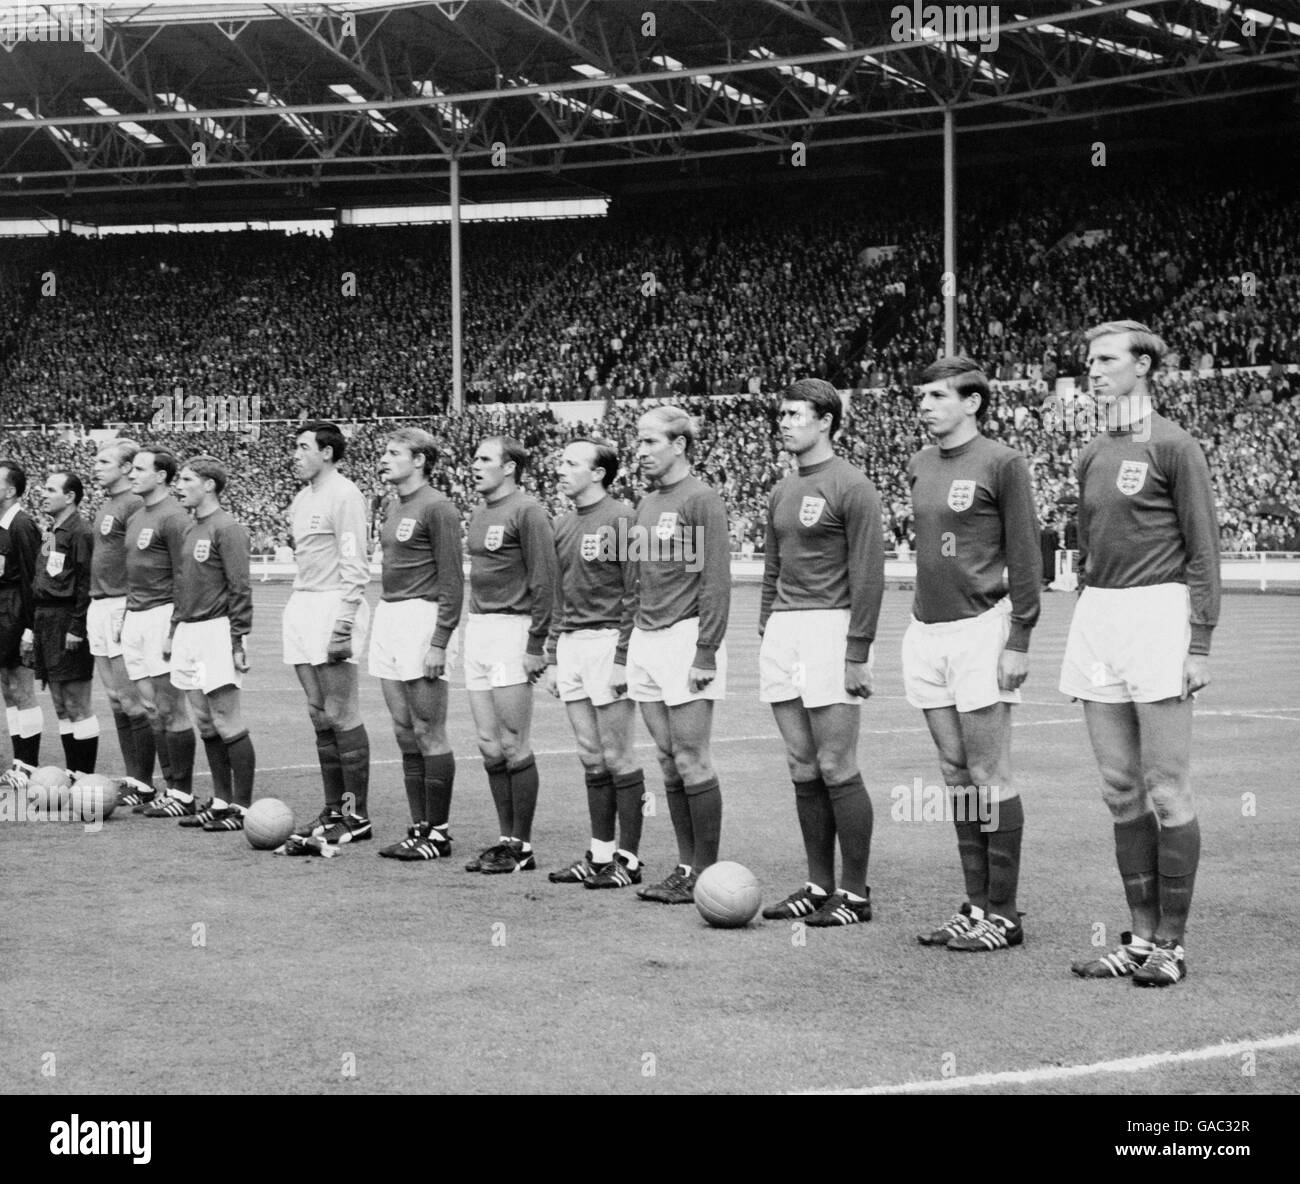 1966 world cup final - photo #21